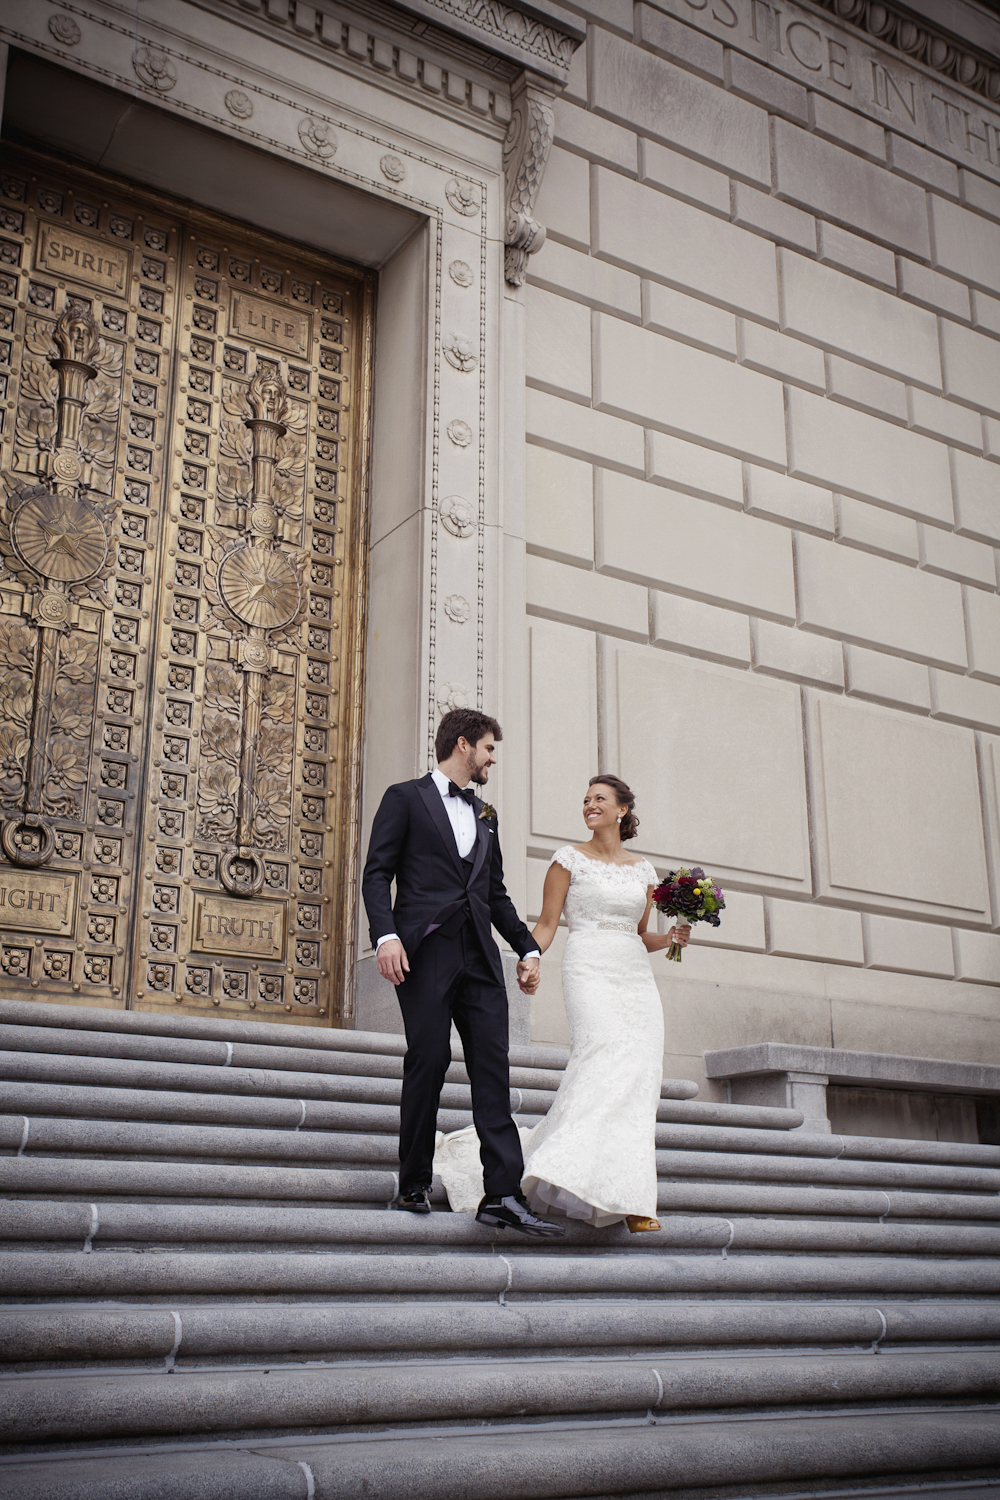 Indianapolis-Indiana-War-Memorial-Wedding-Photographer-Crowes-Eye-Photography-Bride-Groom-Ceremony-2634.jpg